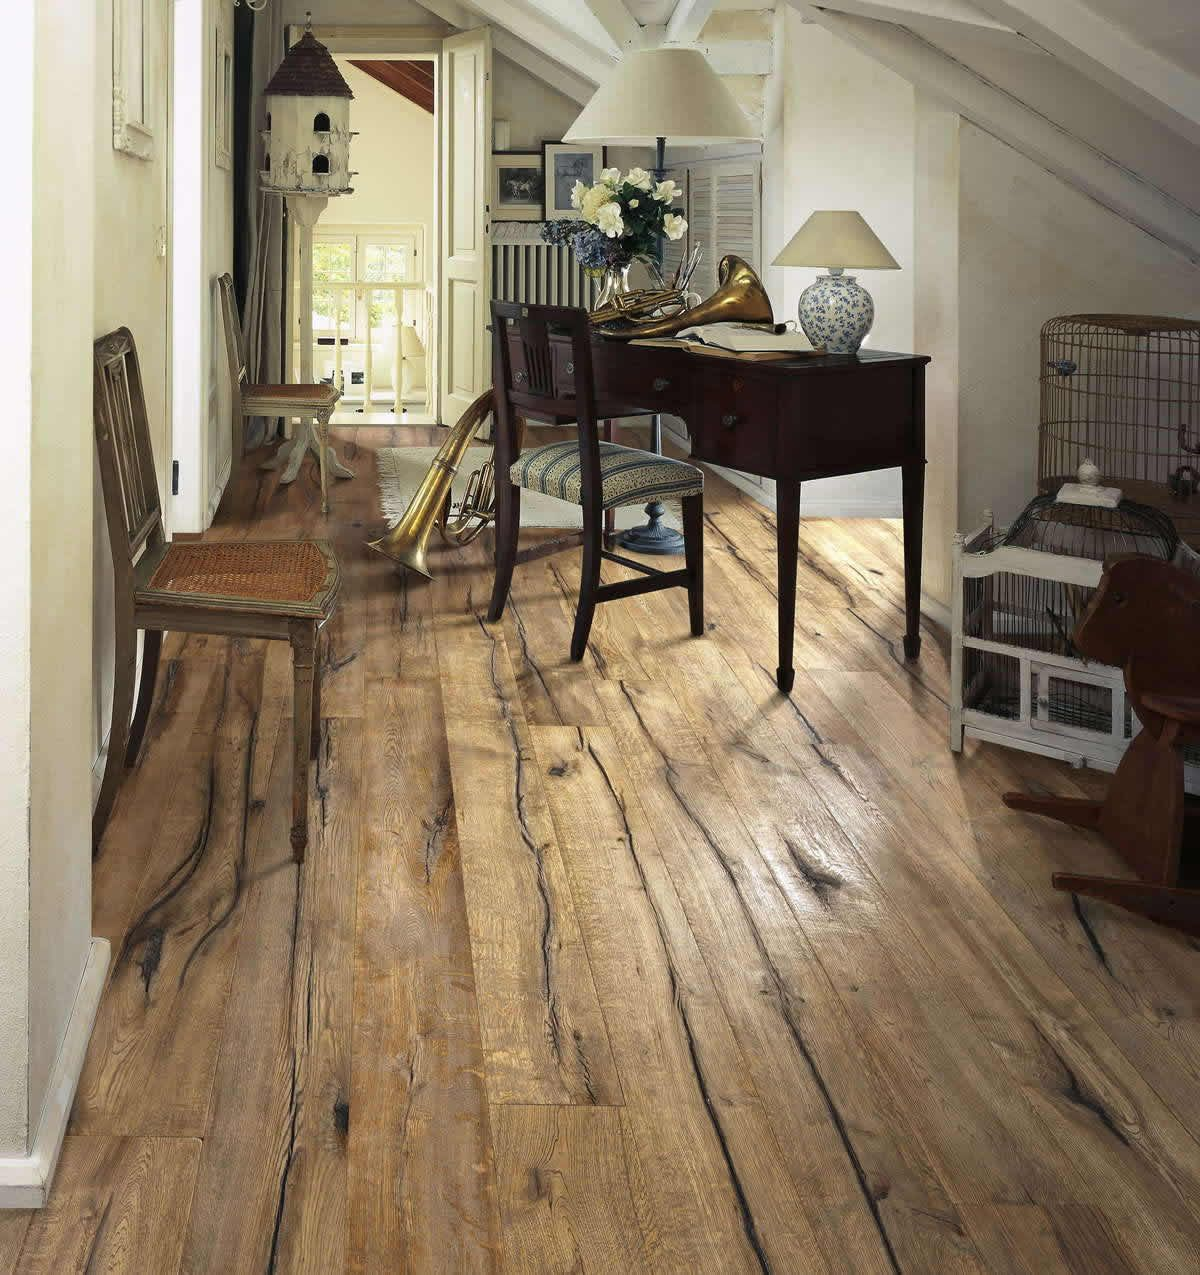 kahrs oak maggiore engineered wood wood flooring and plank. Black Bedroom Furniture Sets. Home Design Ideas